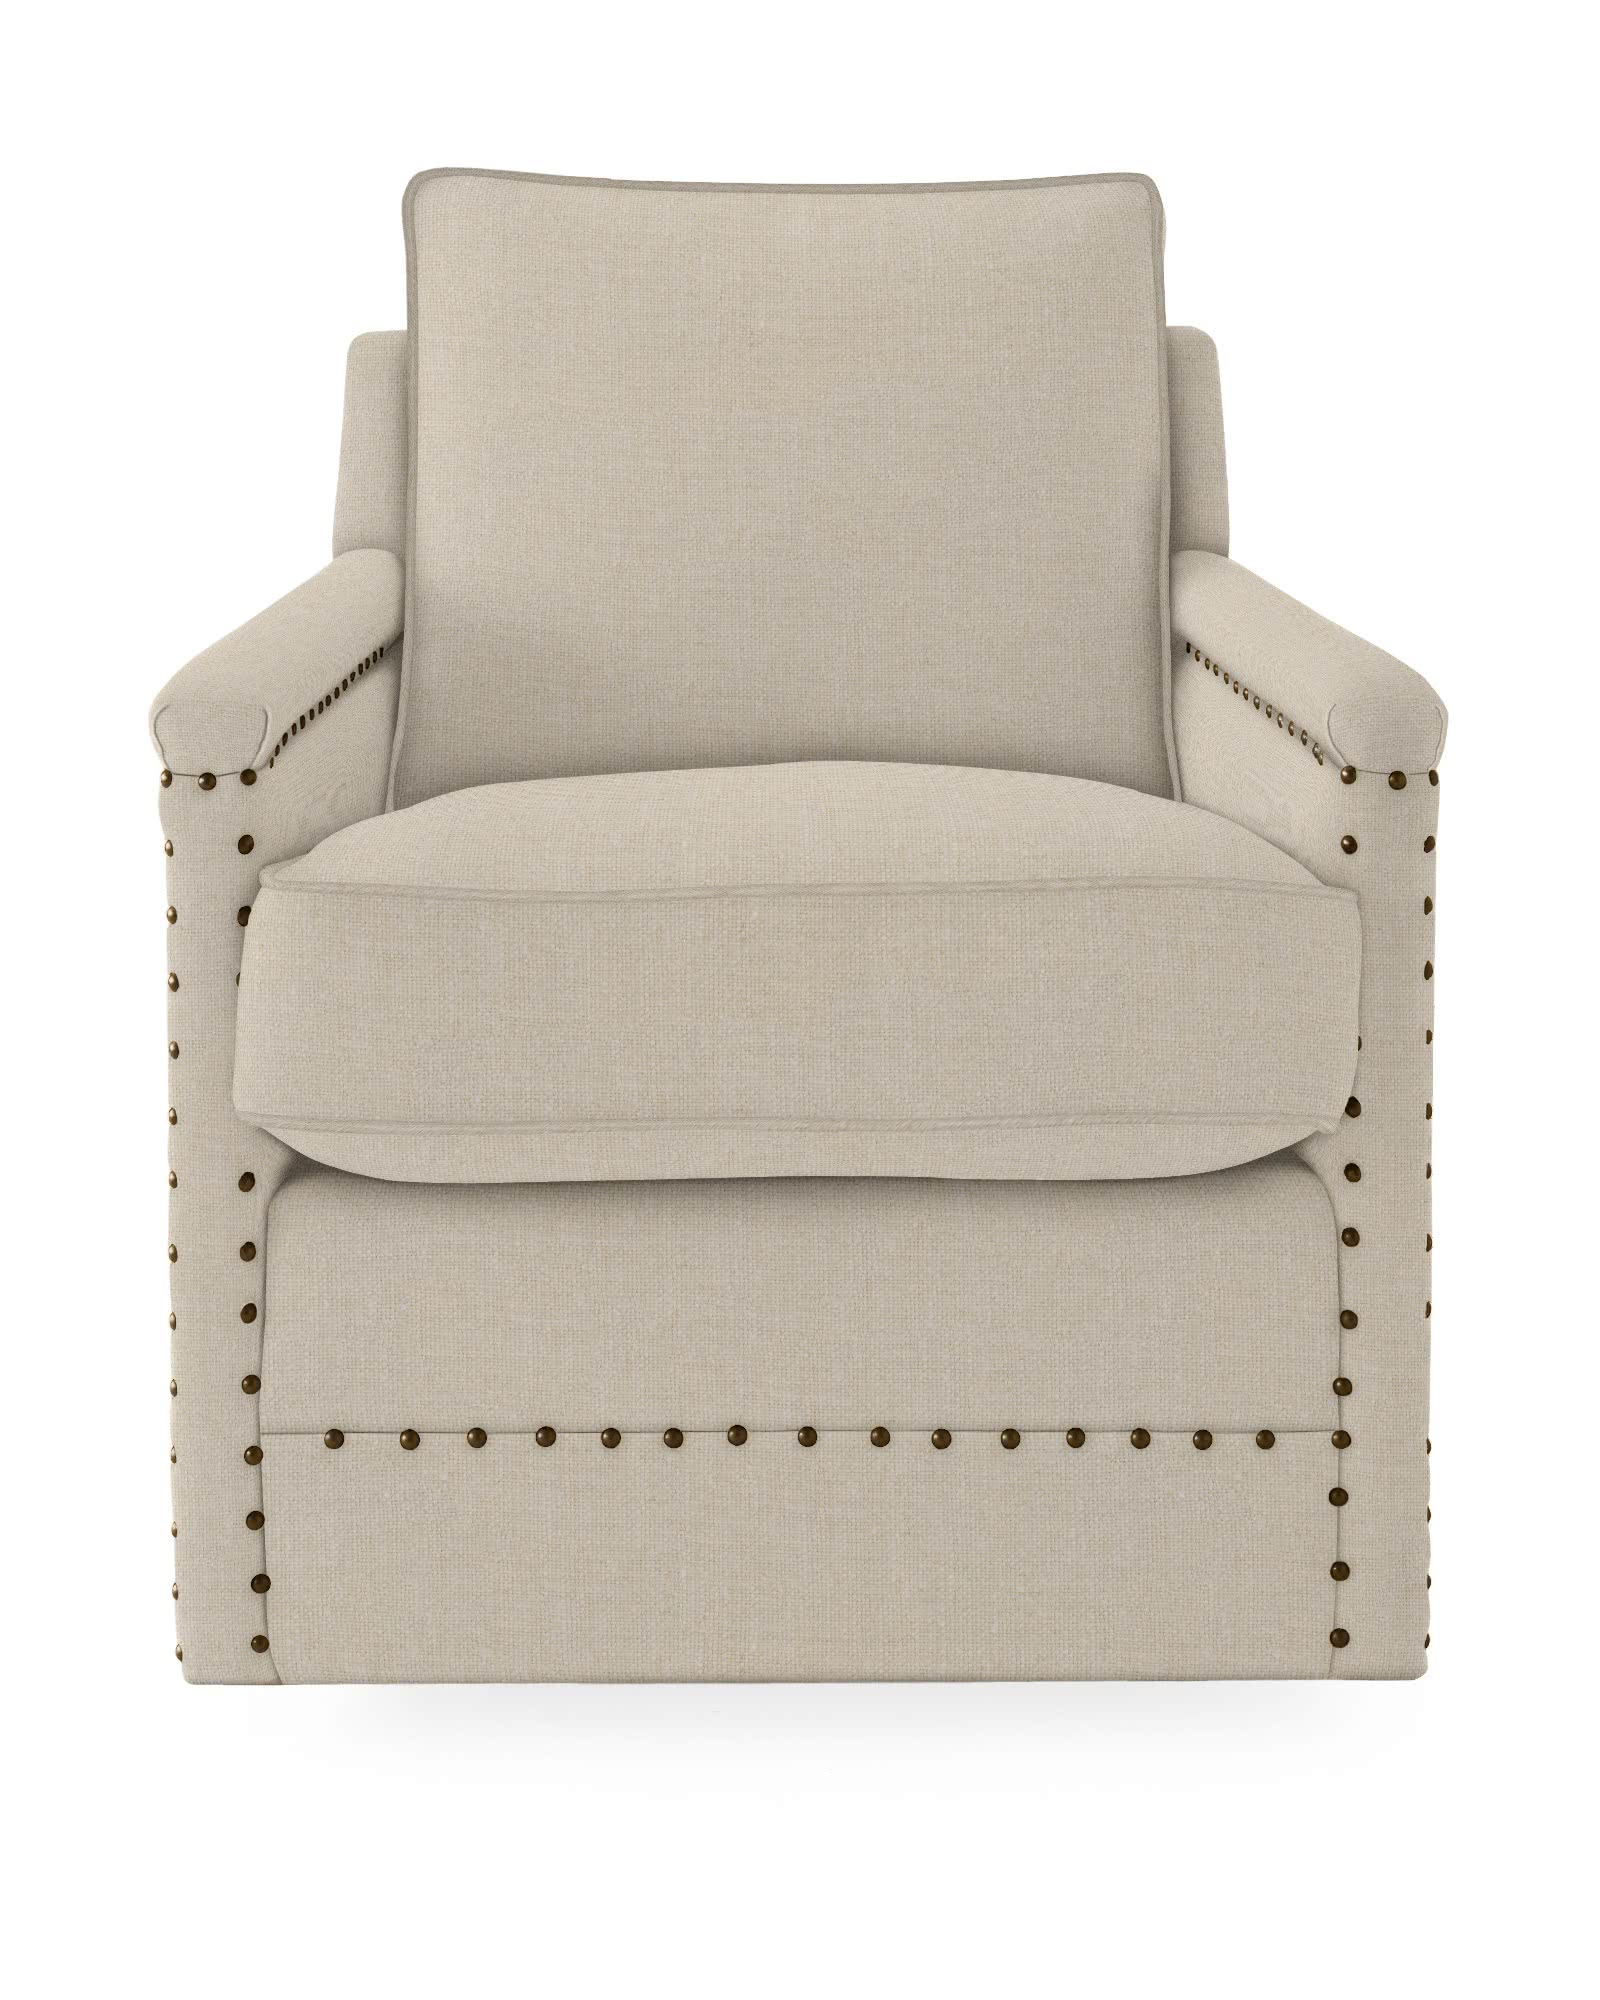 Spruce Street Swivel Chair with Nailheads